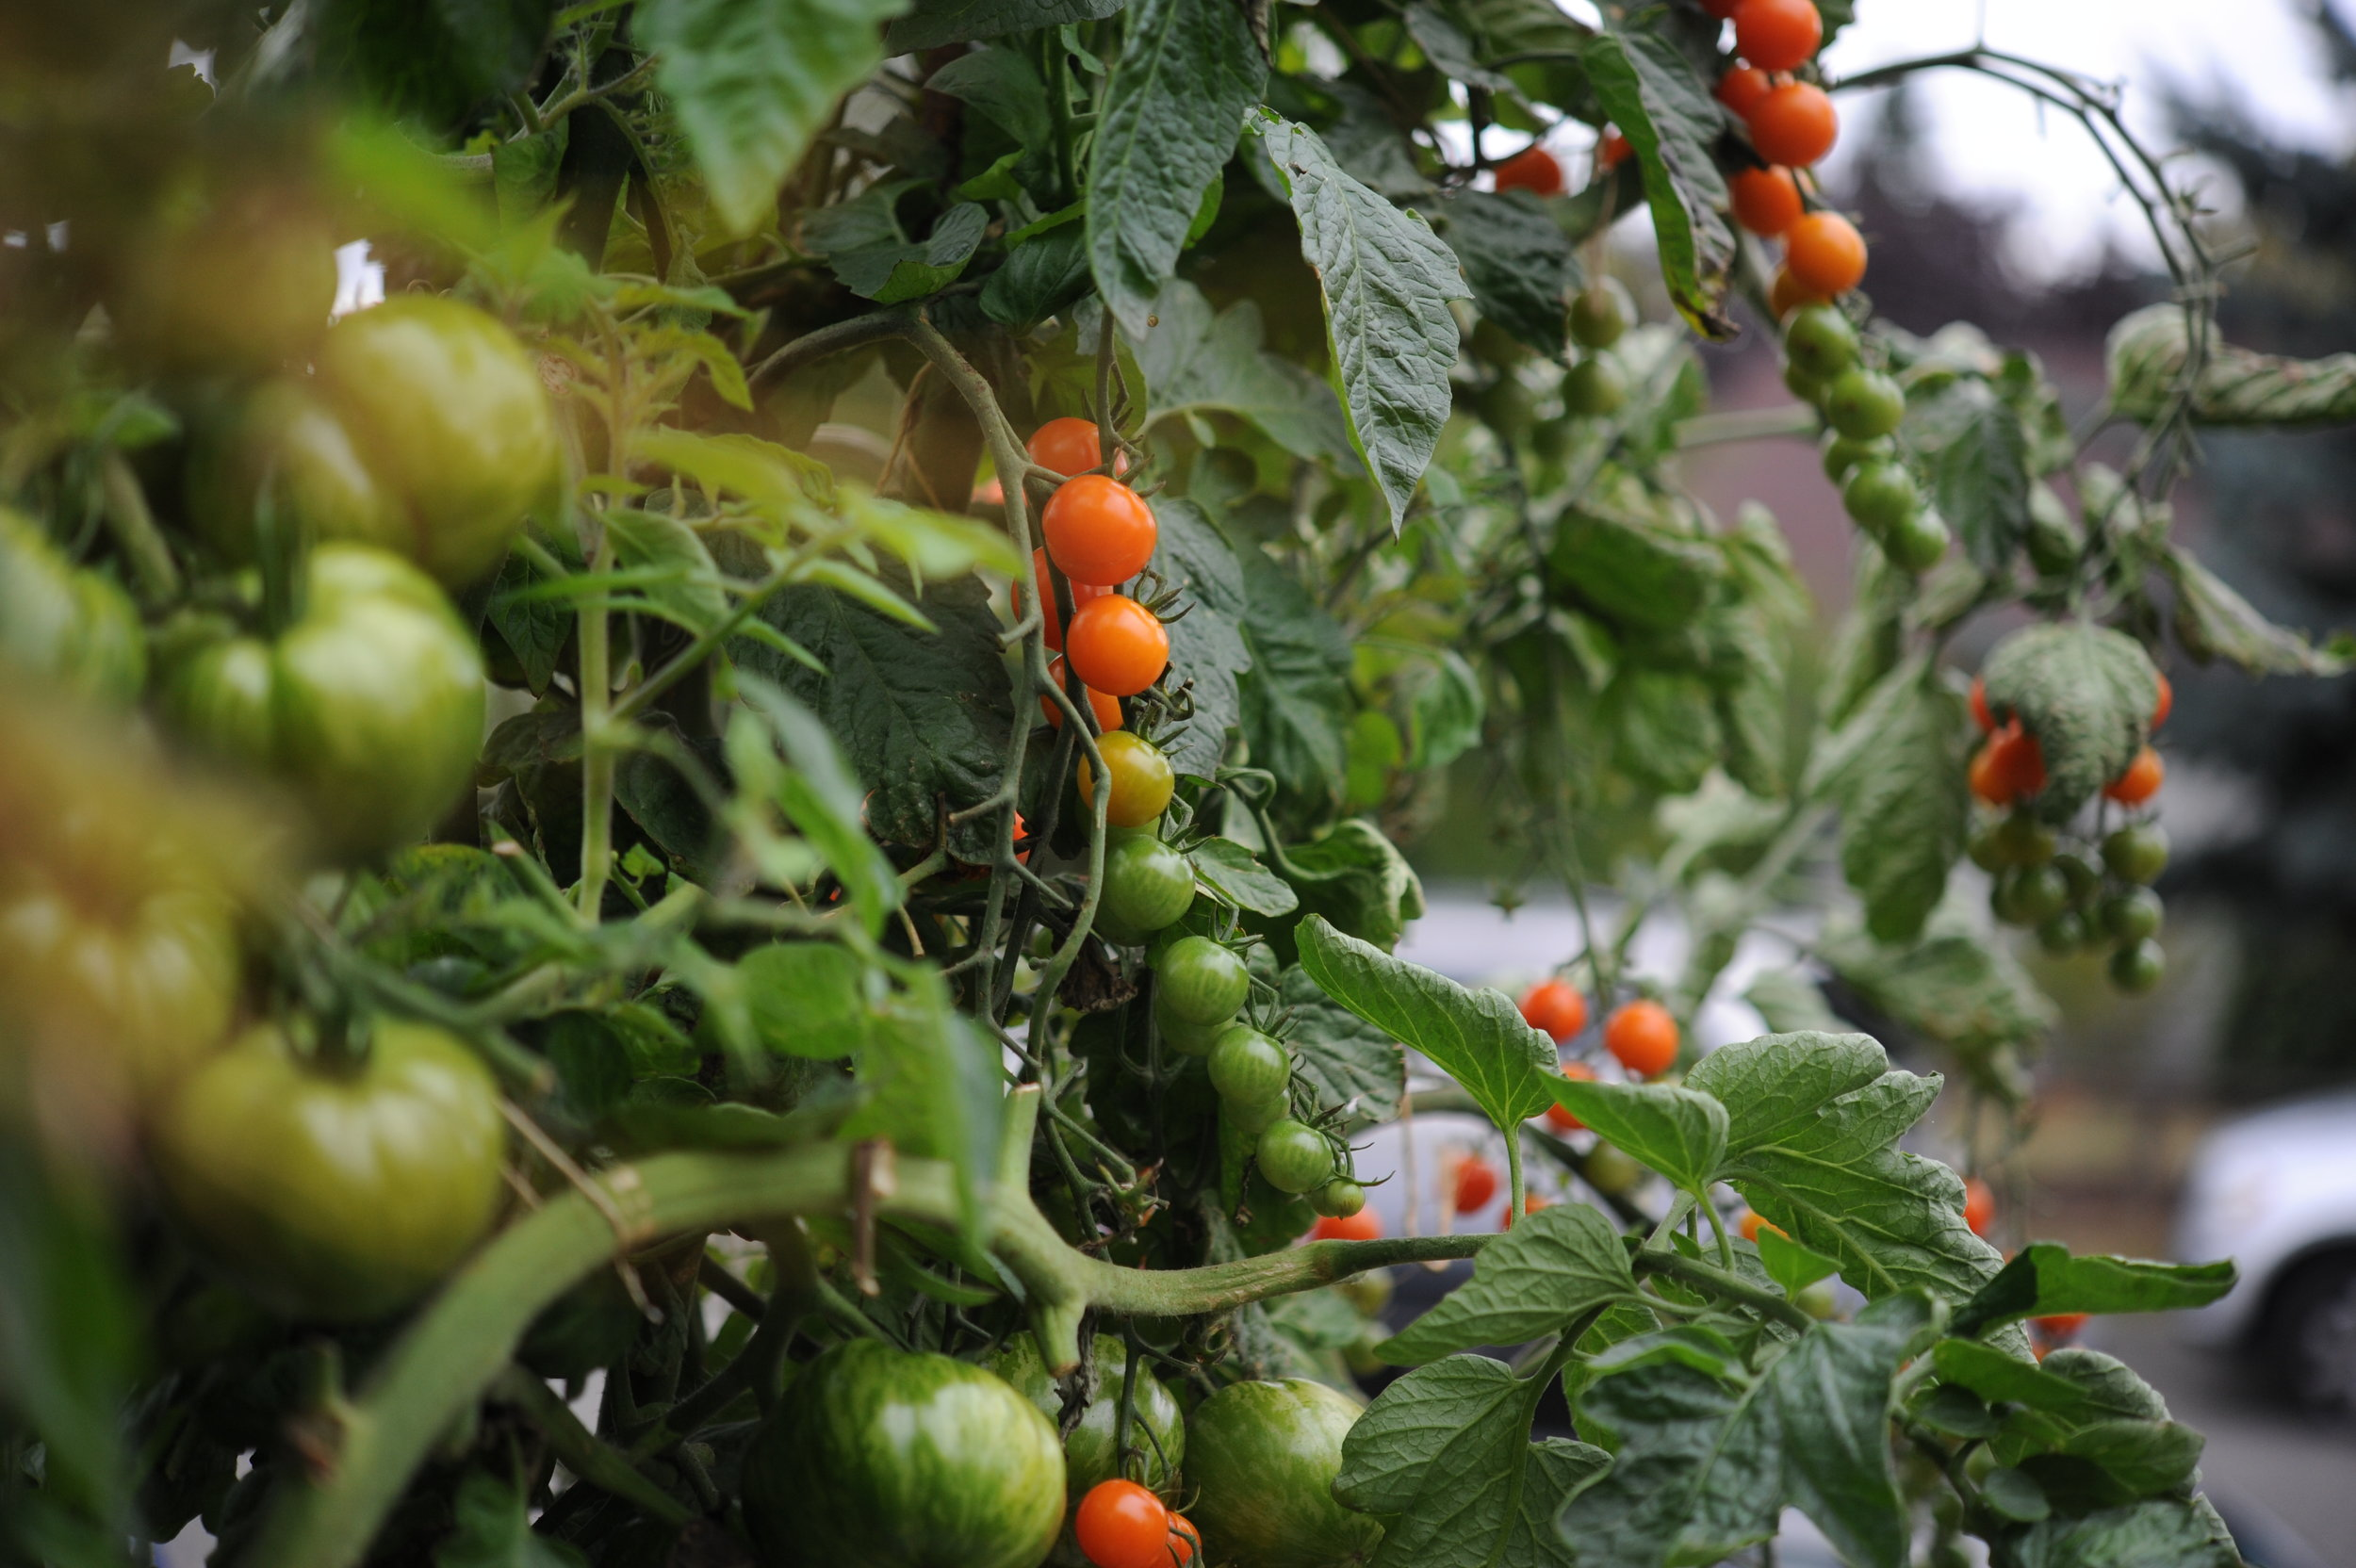 Sungold cherry tomatoes ripening on the vine.